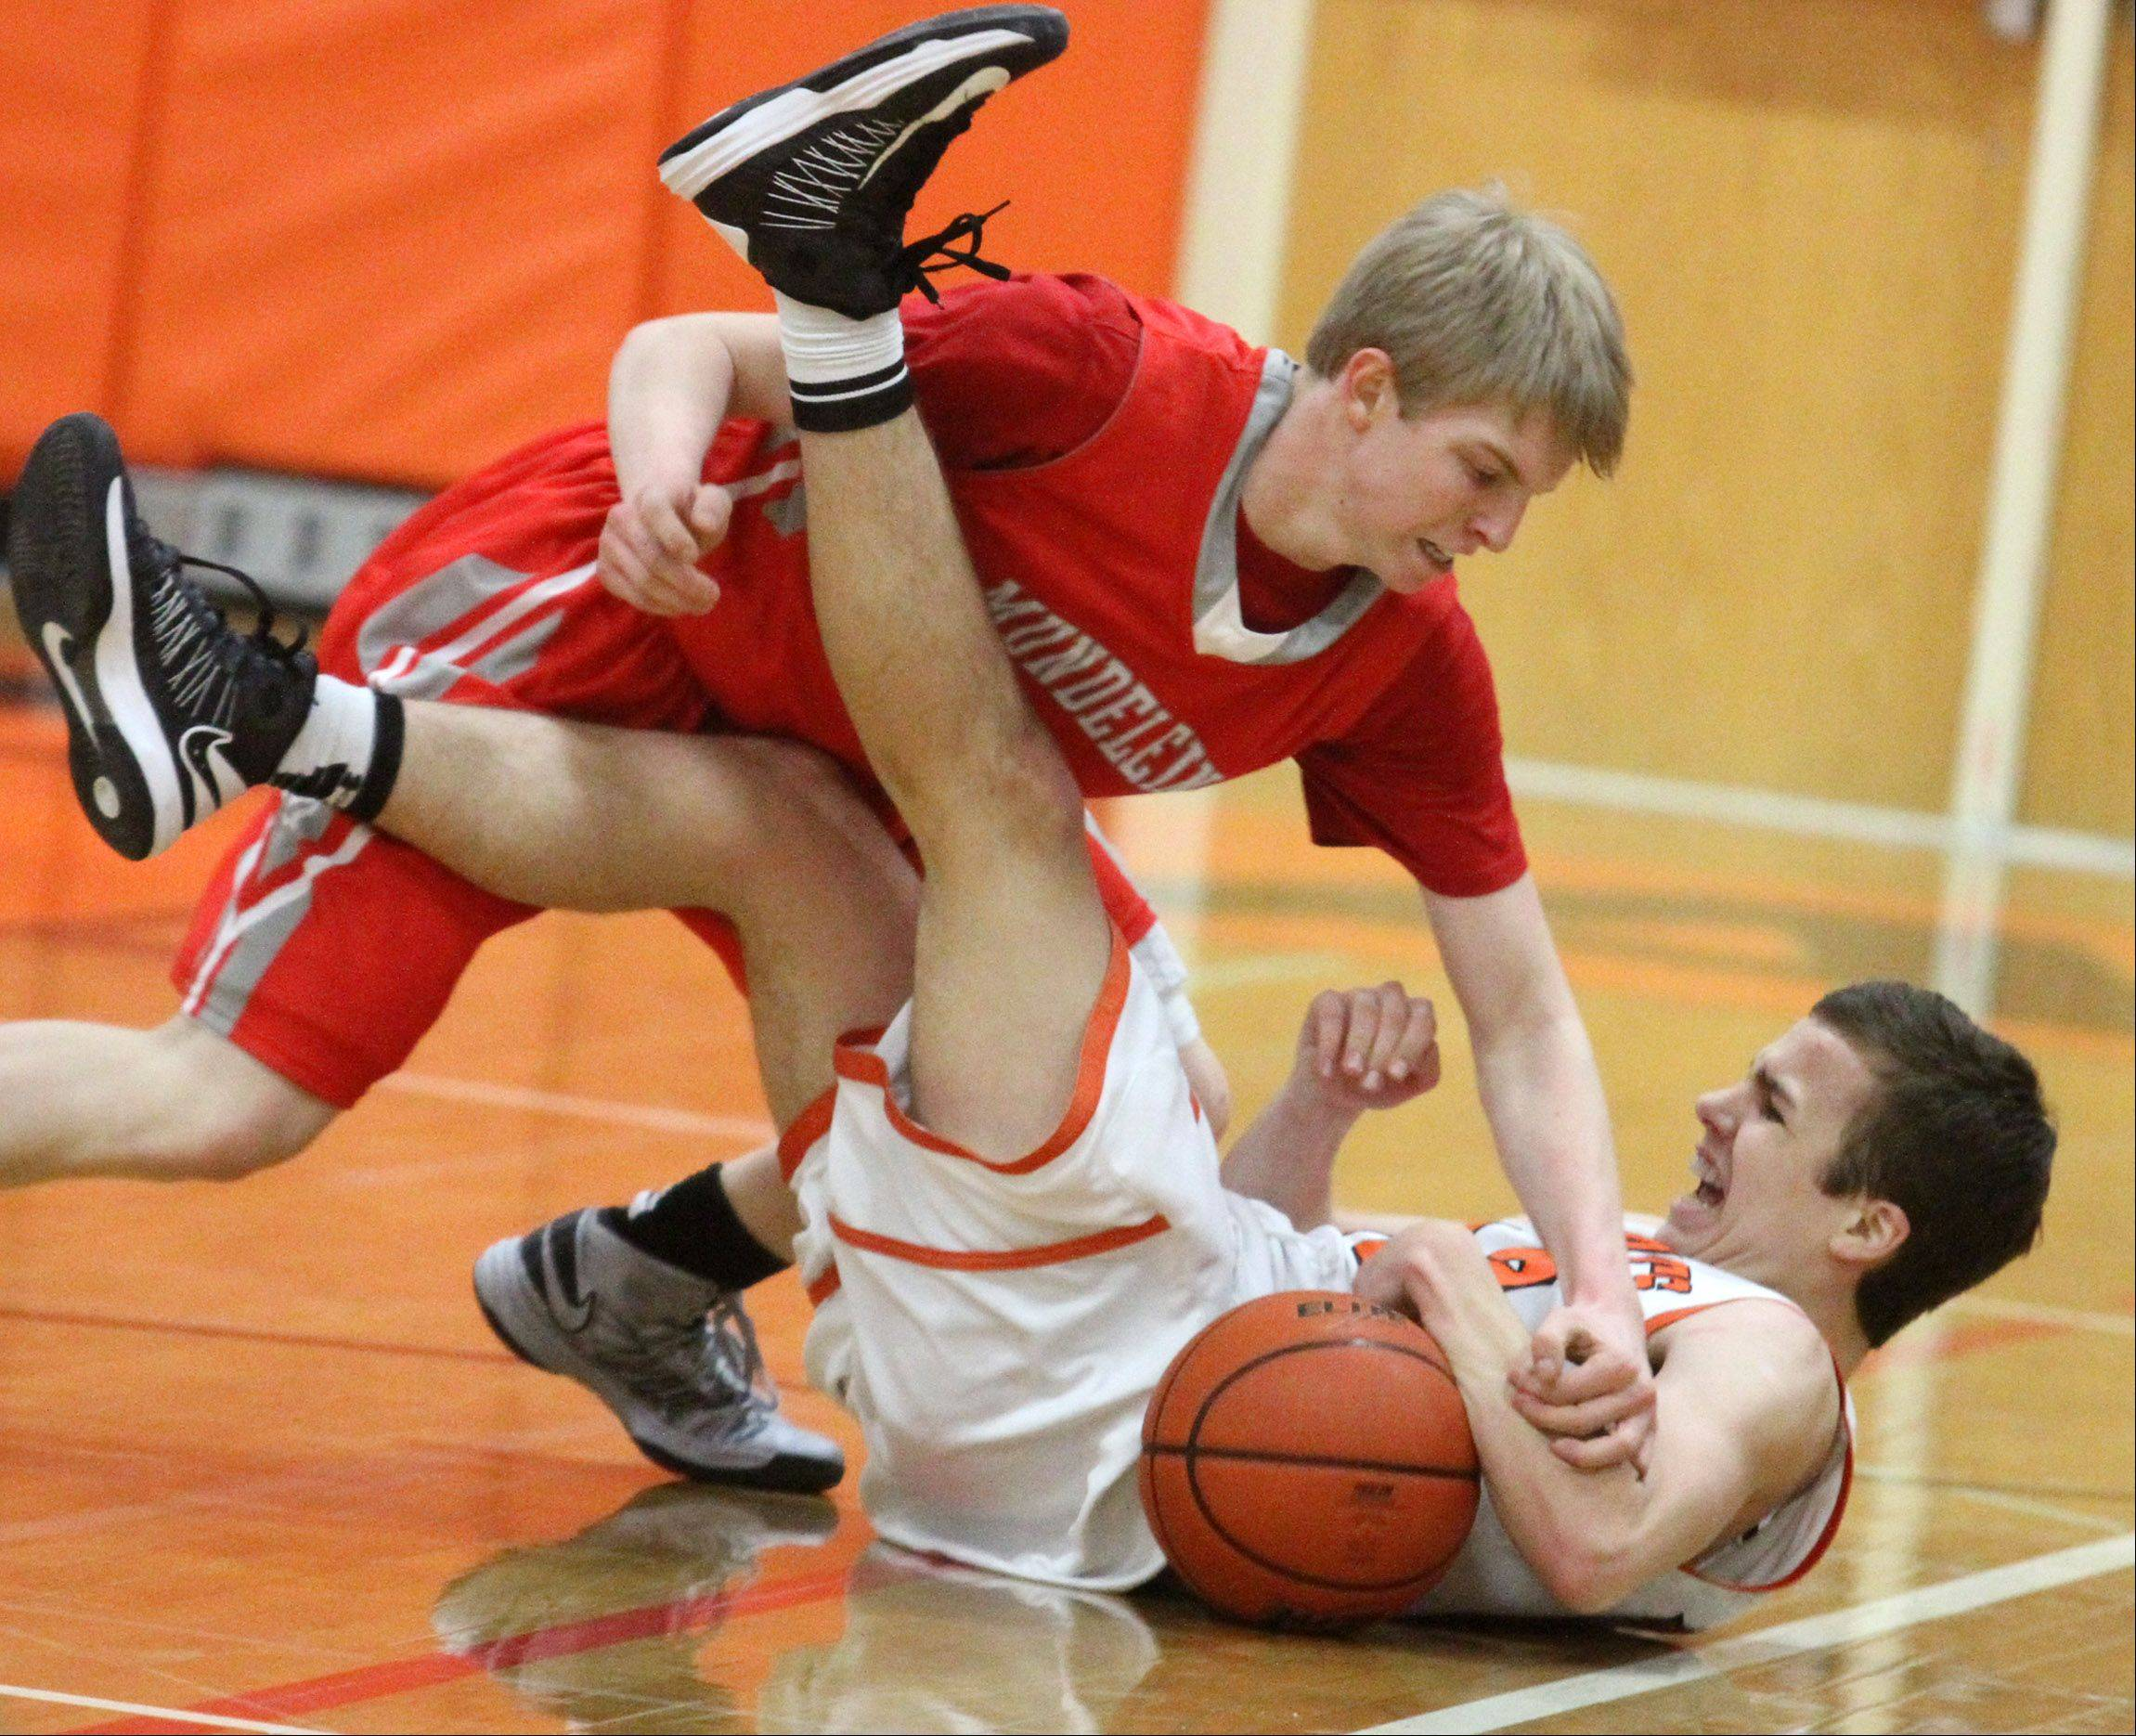 Mundelein defender Dylan Delaquila tries to take the ball from Libertyville guard Nick Carlucci after the two collided in the first half.